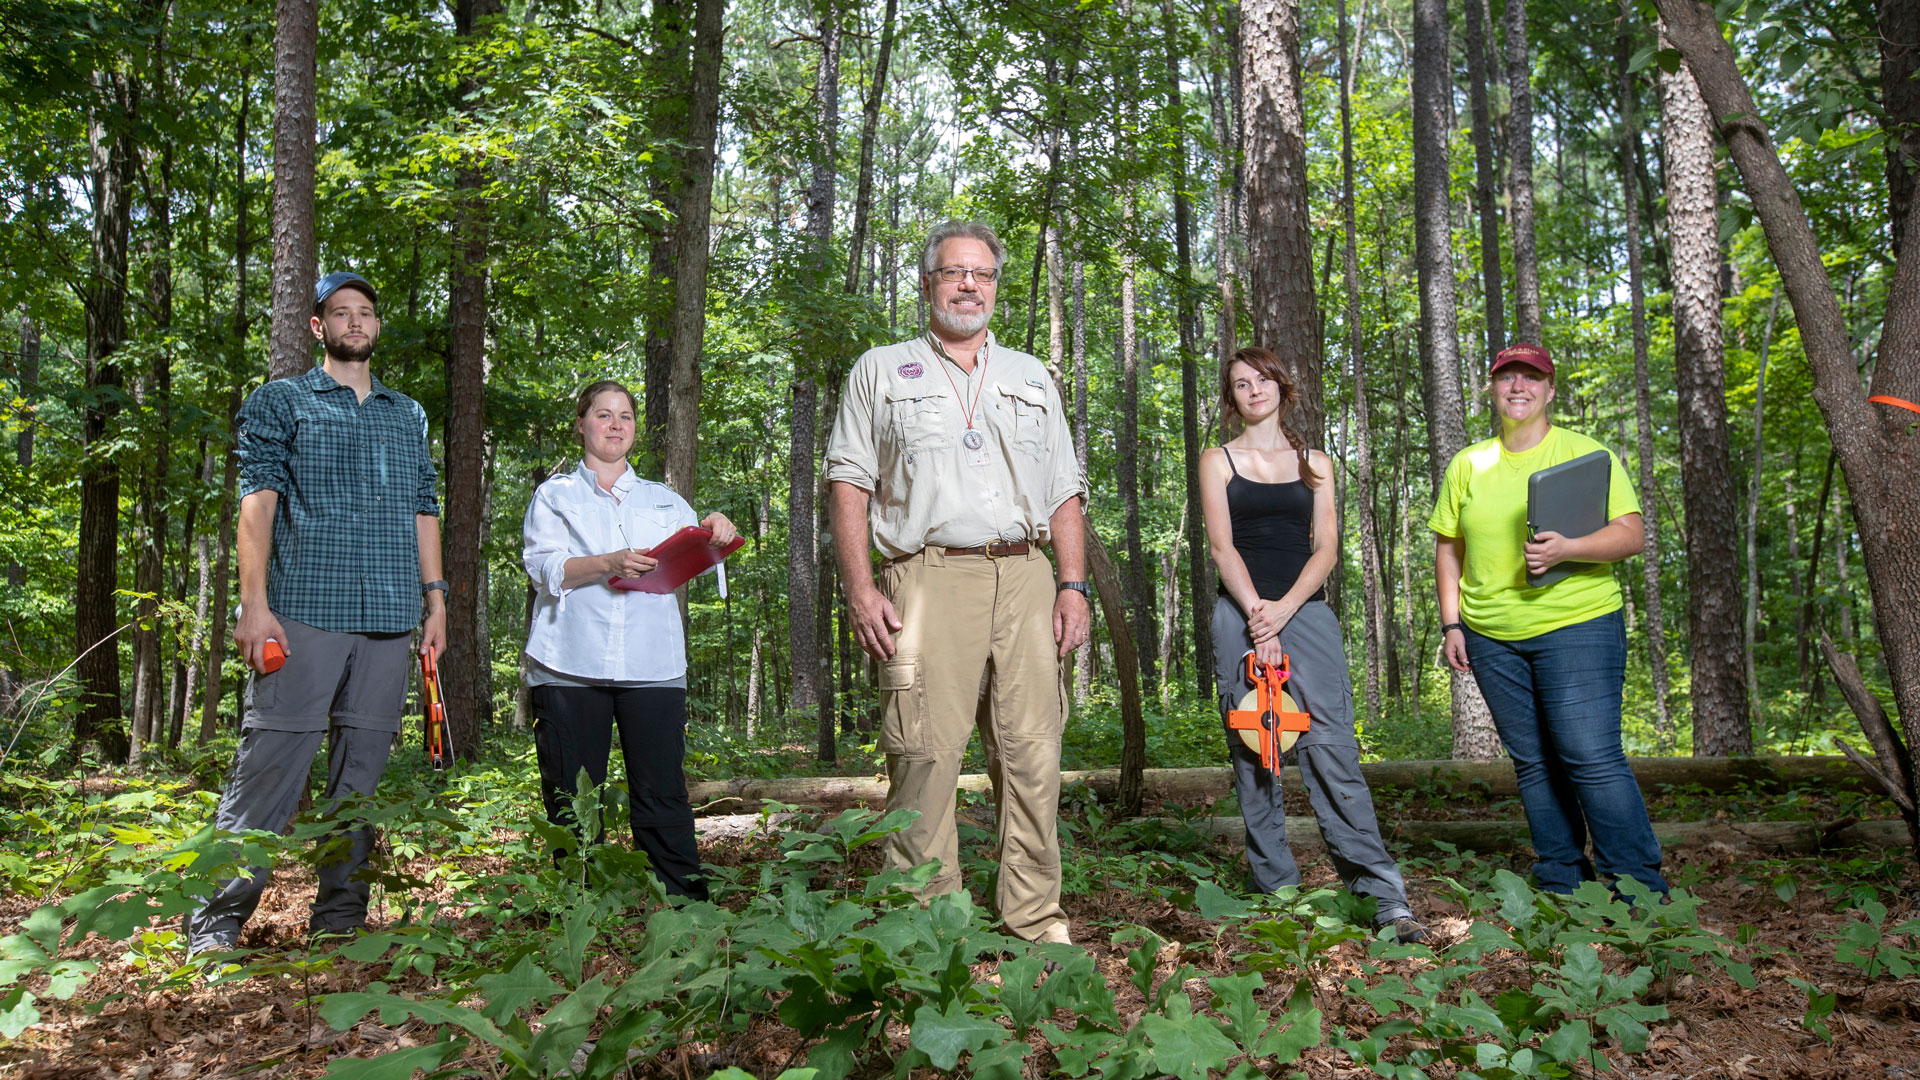 Dr. Robert Pavlowsky and students in the Mark Twain National Forest on July 17, 2018.